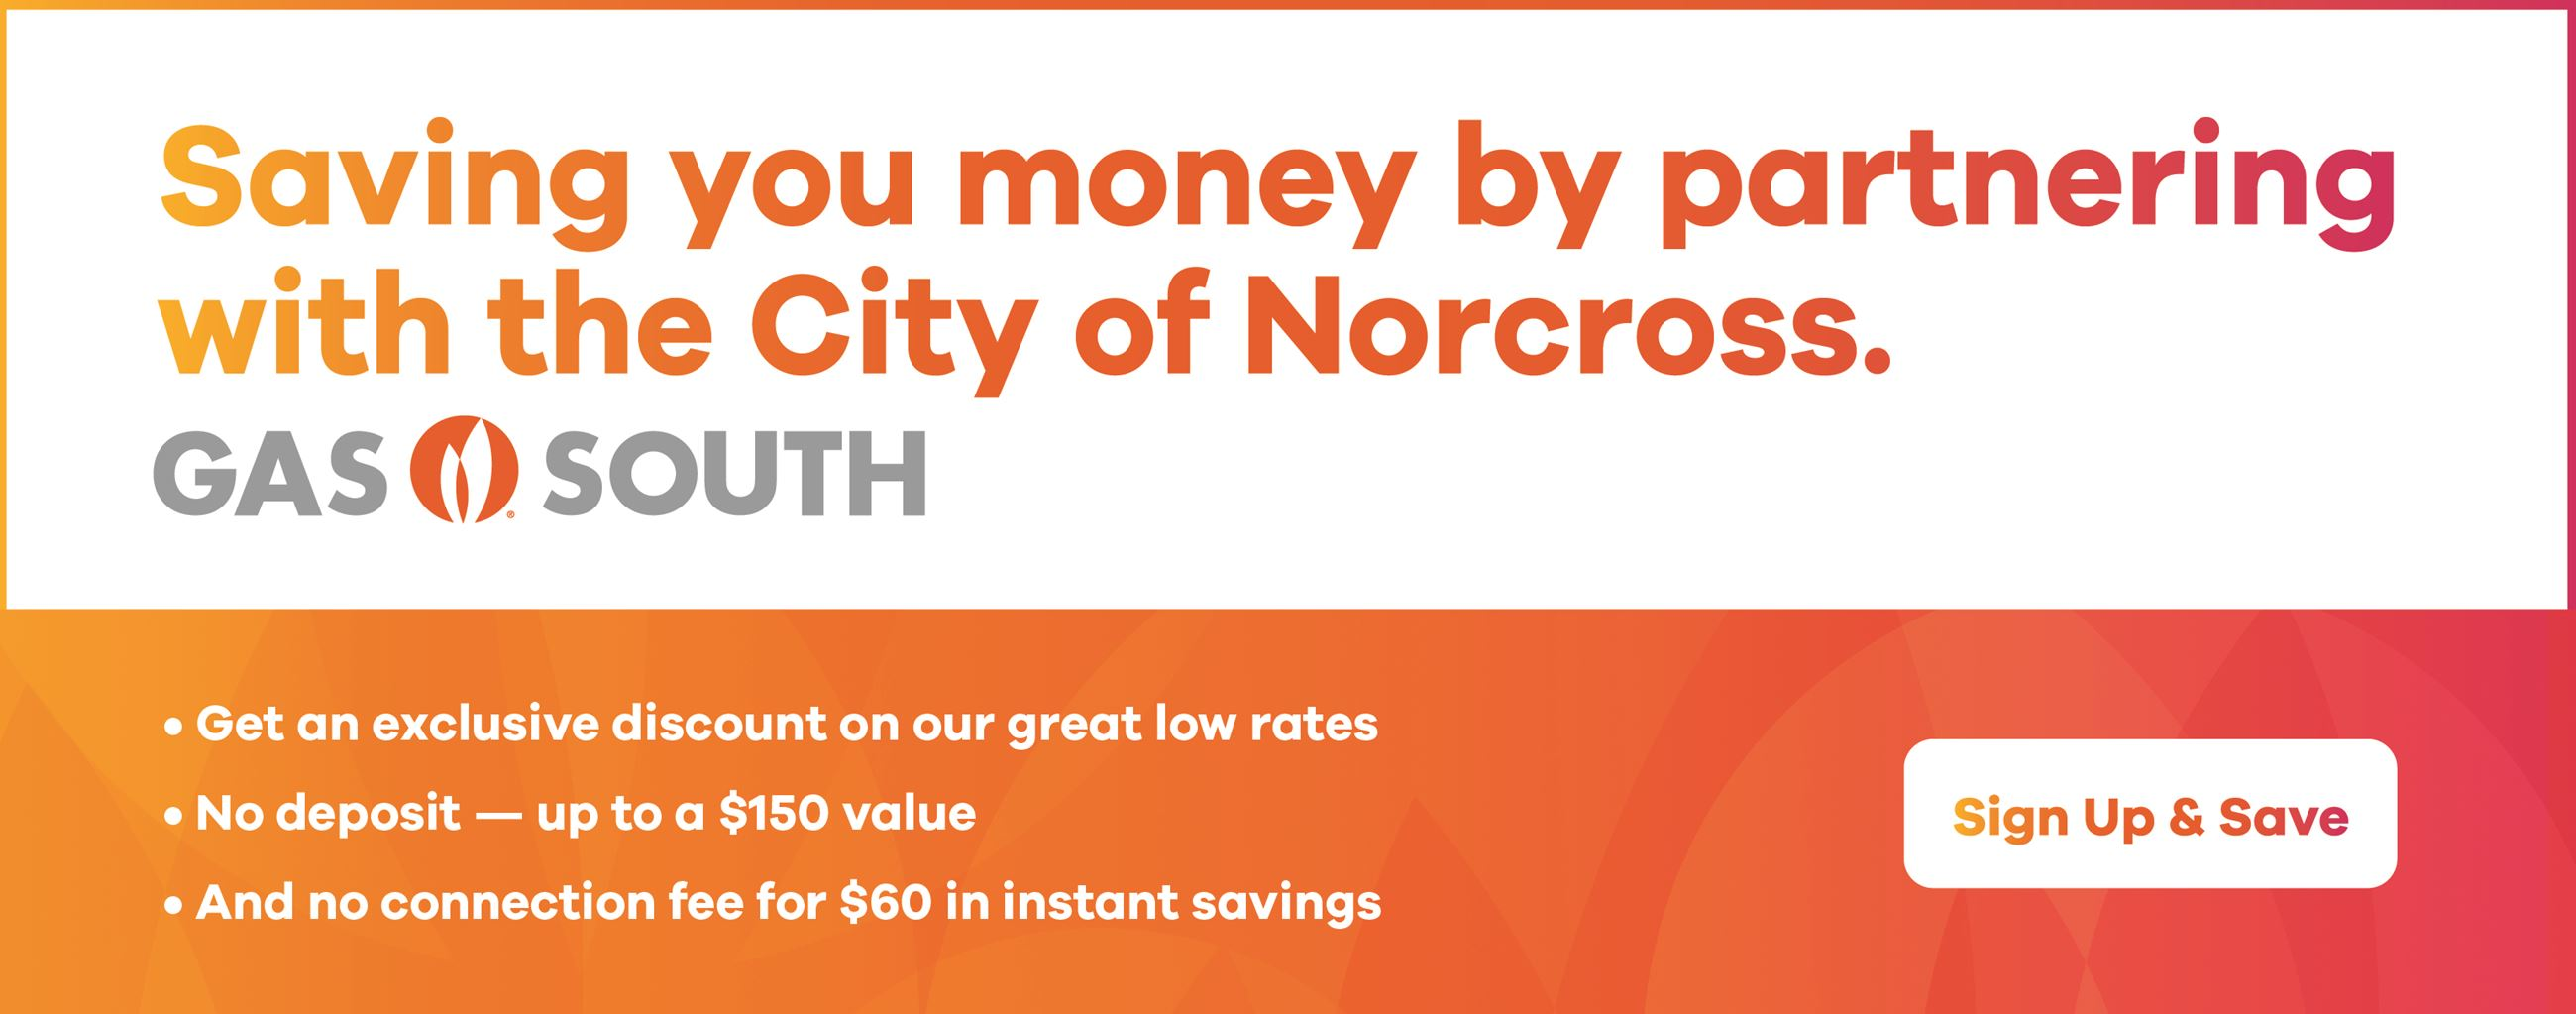 City_of_Norcross_Ad_740x291-01